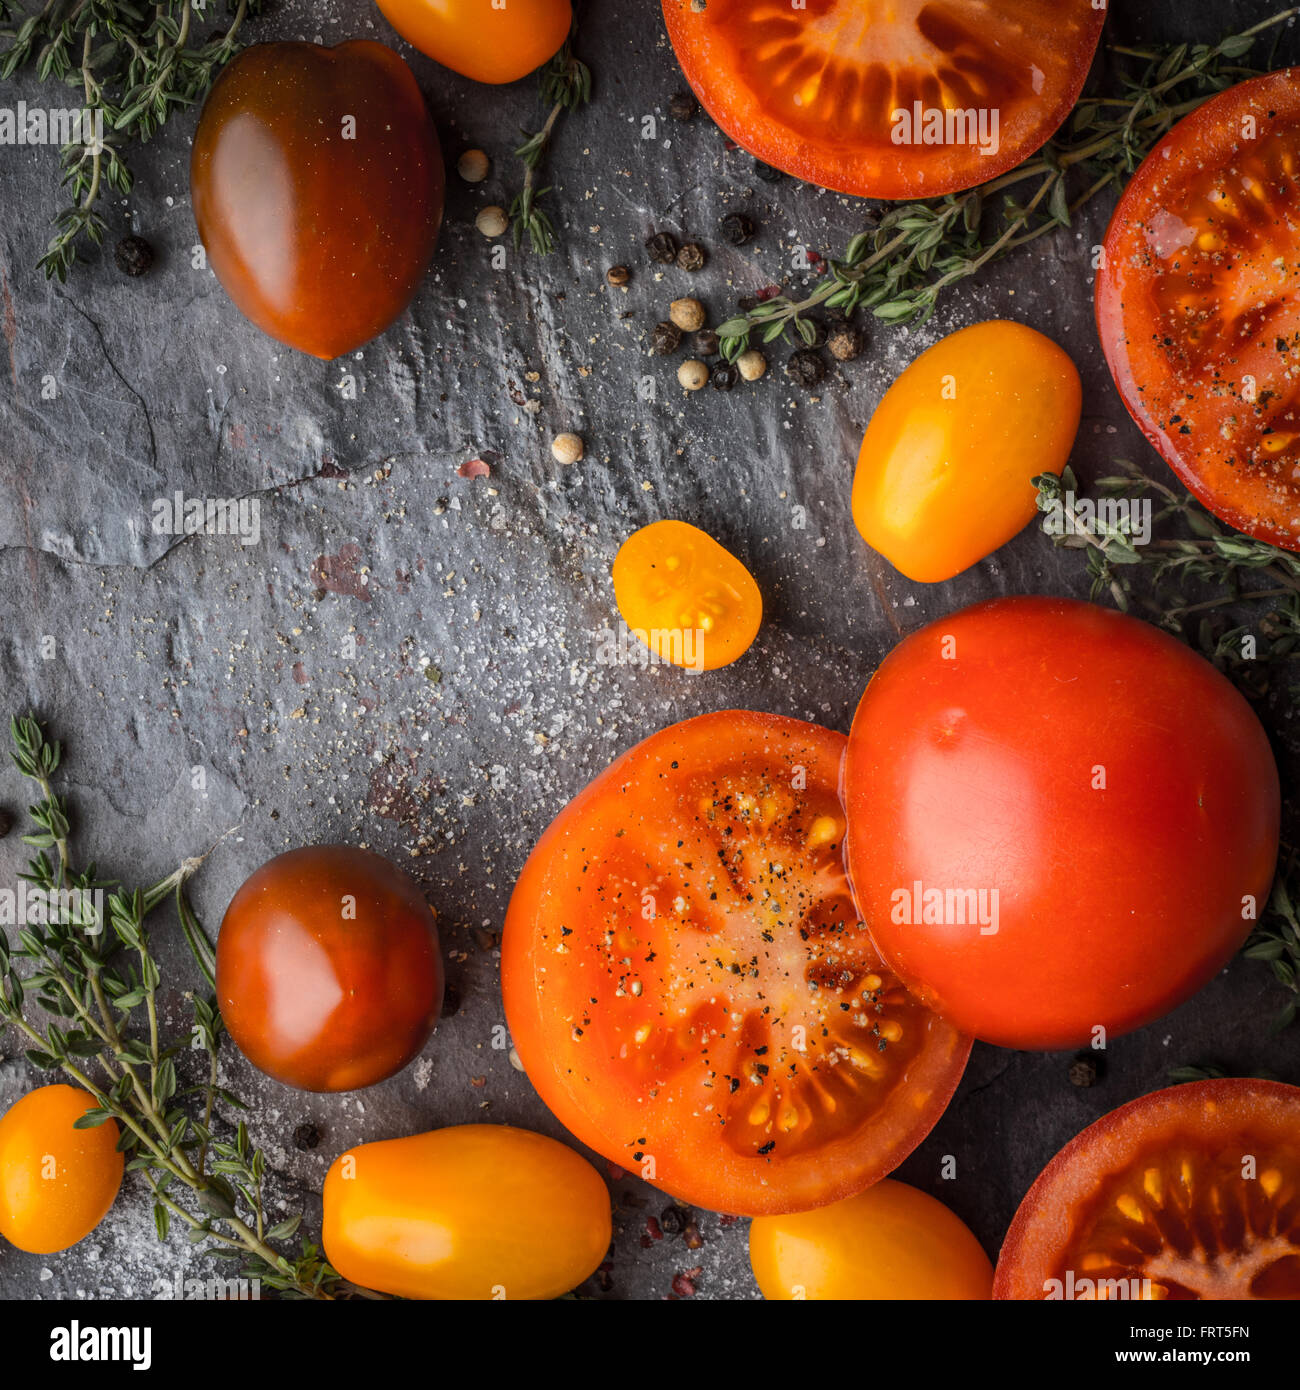 Tomatoes mix  with herbs on the stone table square - Stock Image